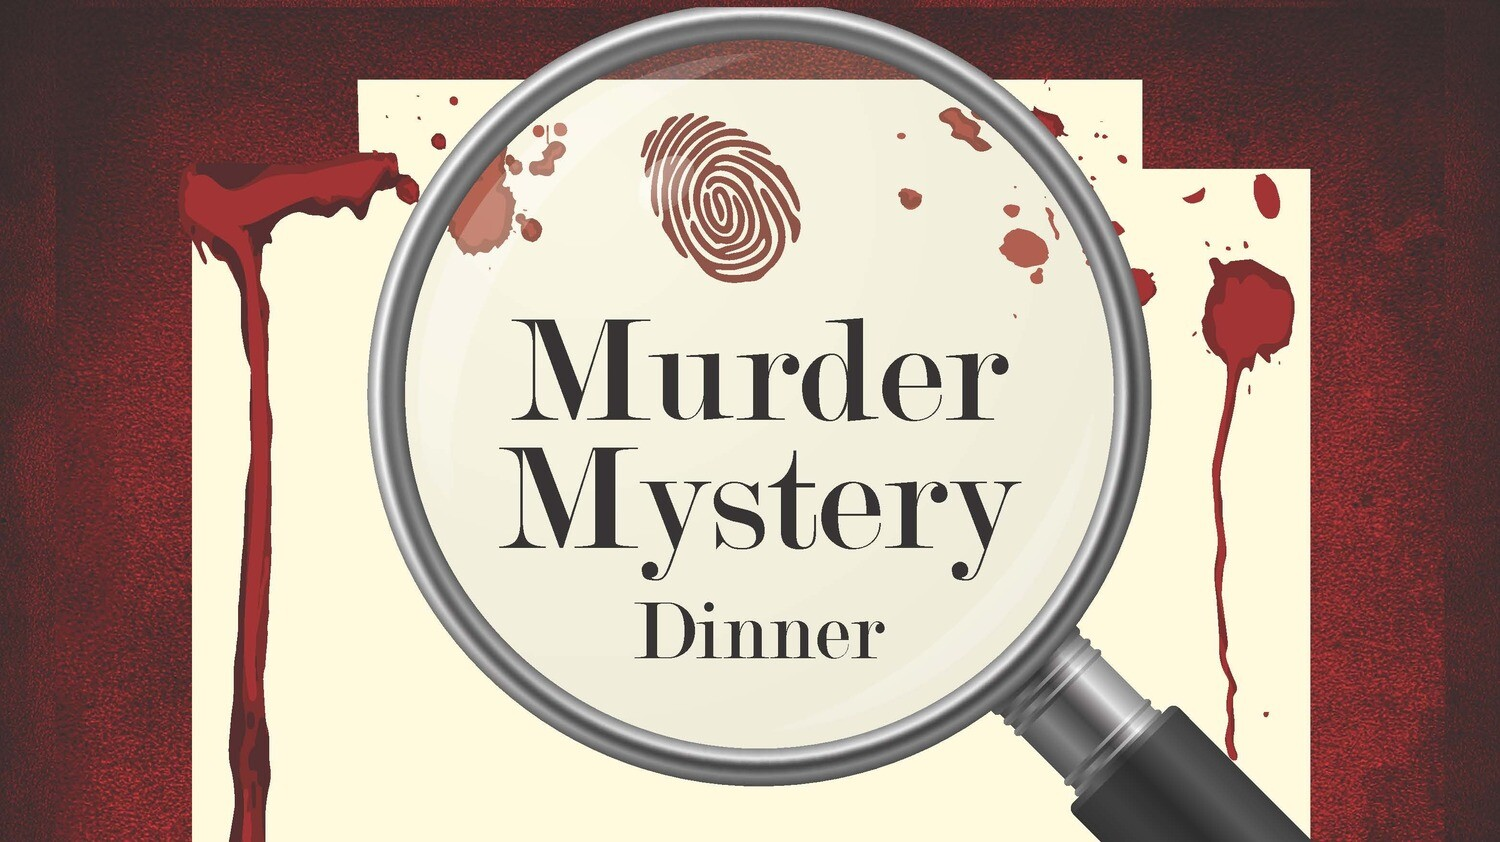 Murder Mystery Couples Dinner Ticket 3/7/20